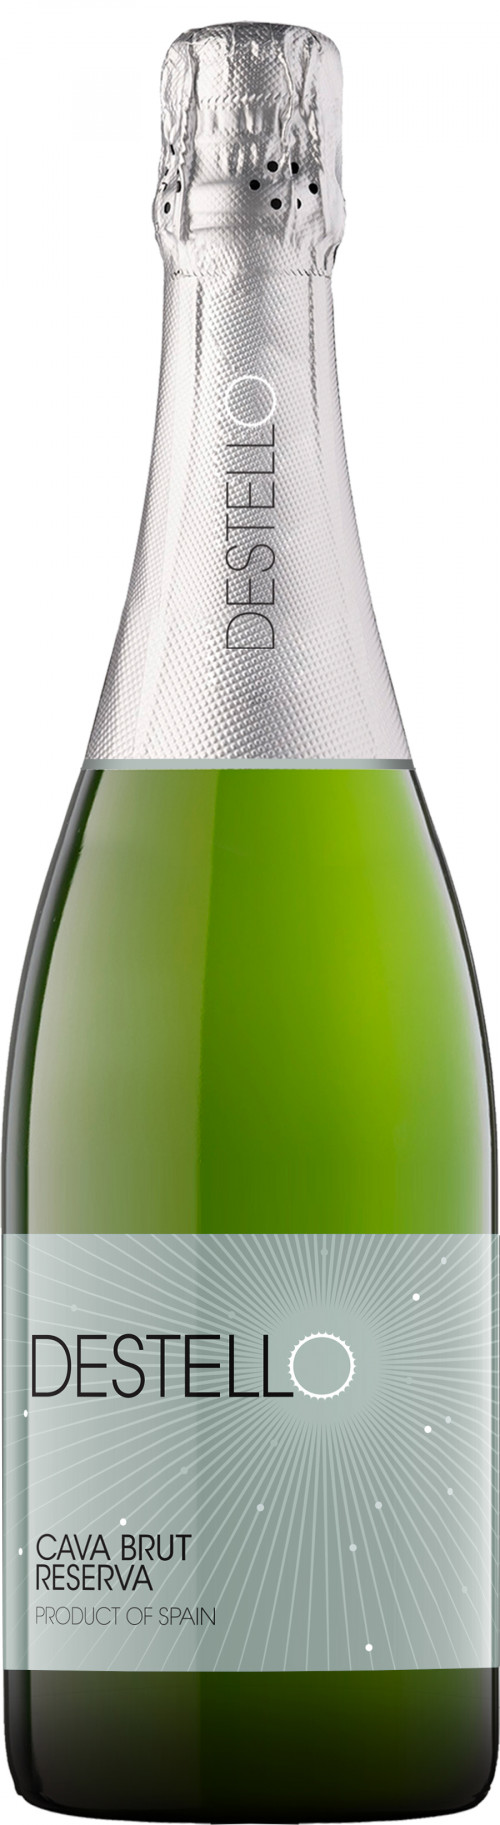 Destello Cava Brut 750ml